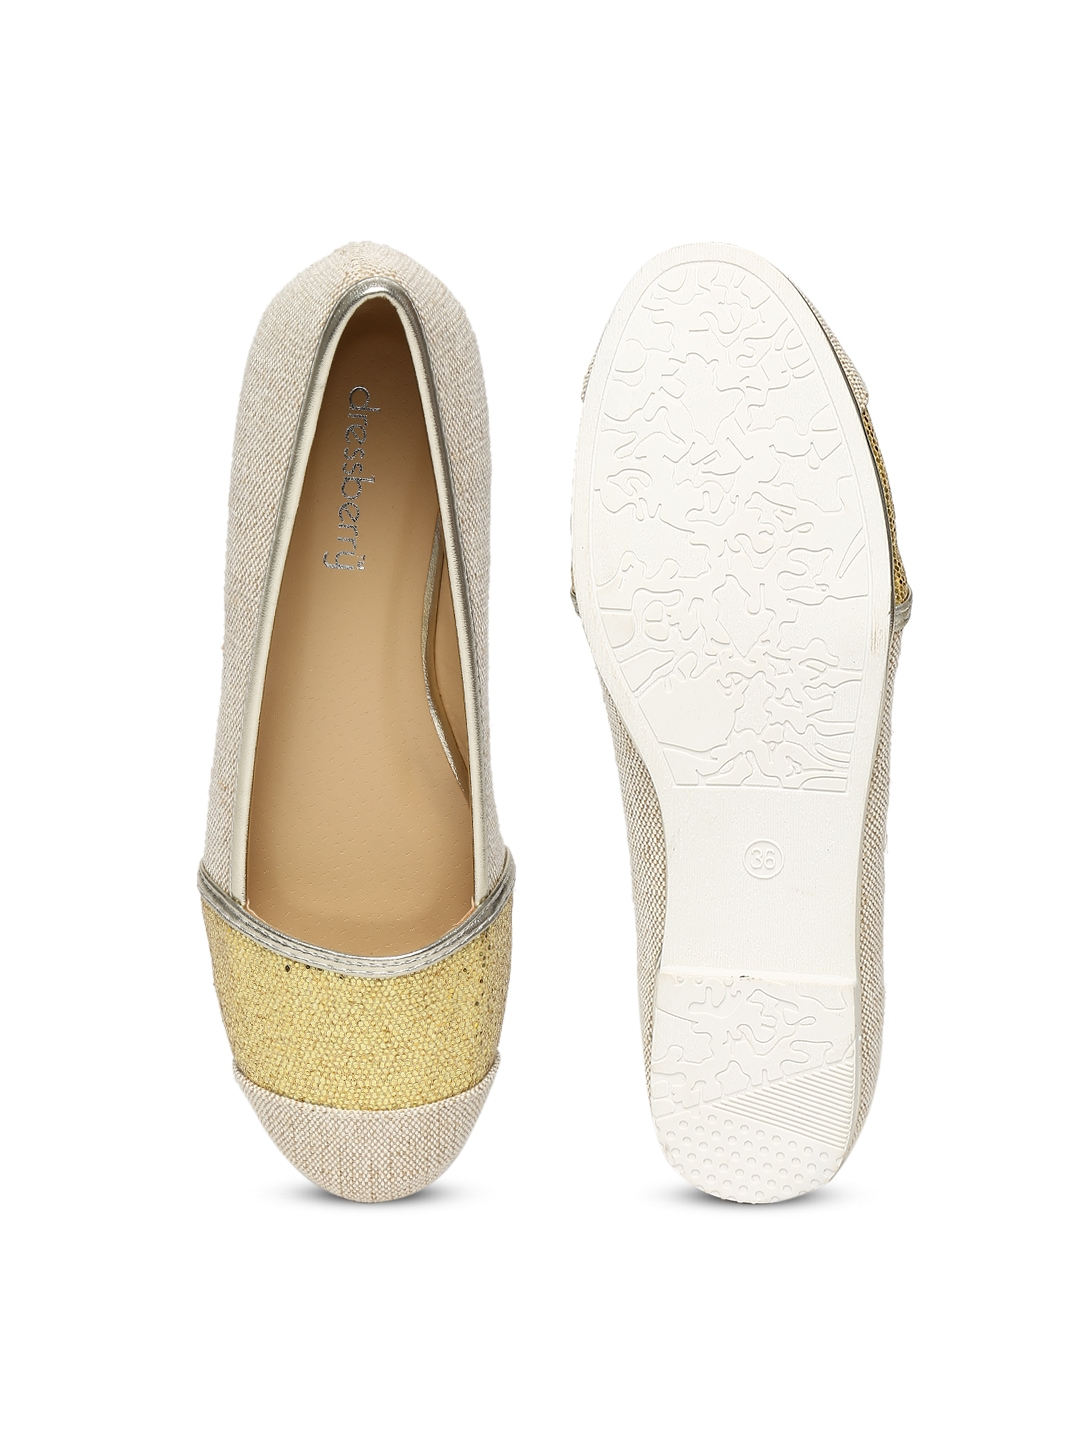 Find the perfect pair of flats at Hudson's Bay. Beige, brown, black, silver, pink, nude and more colours! Free shipping on orders over $